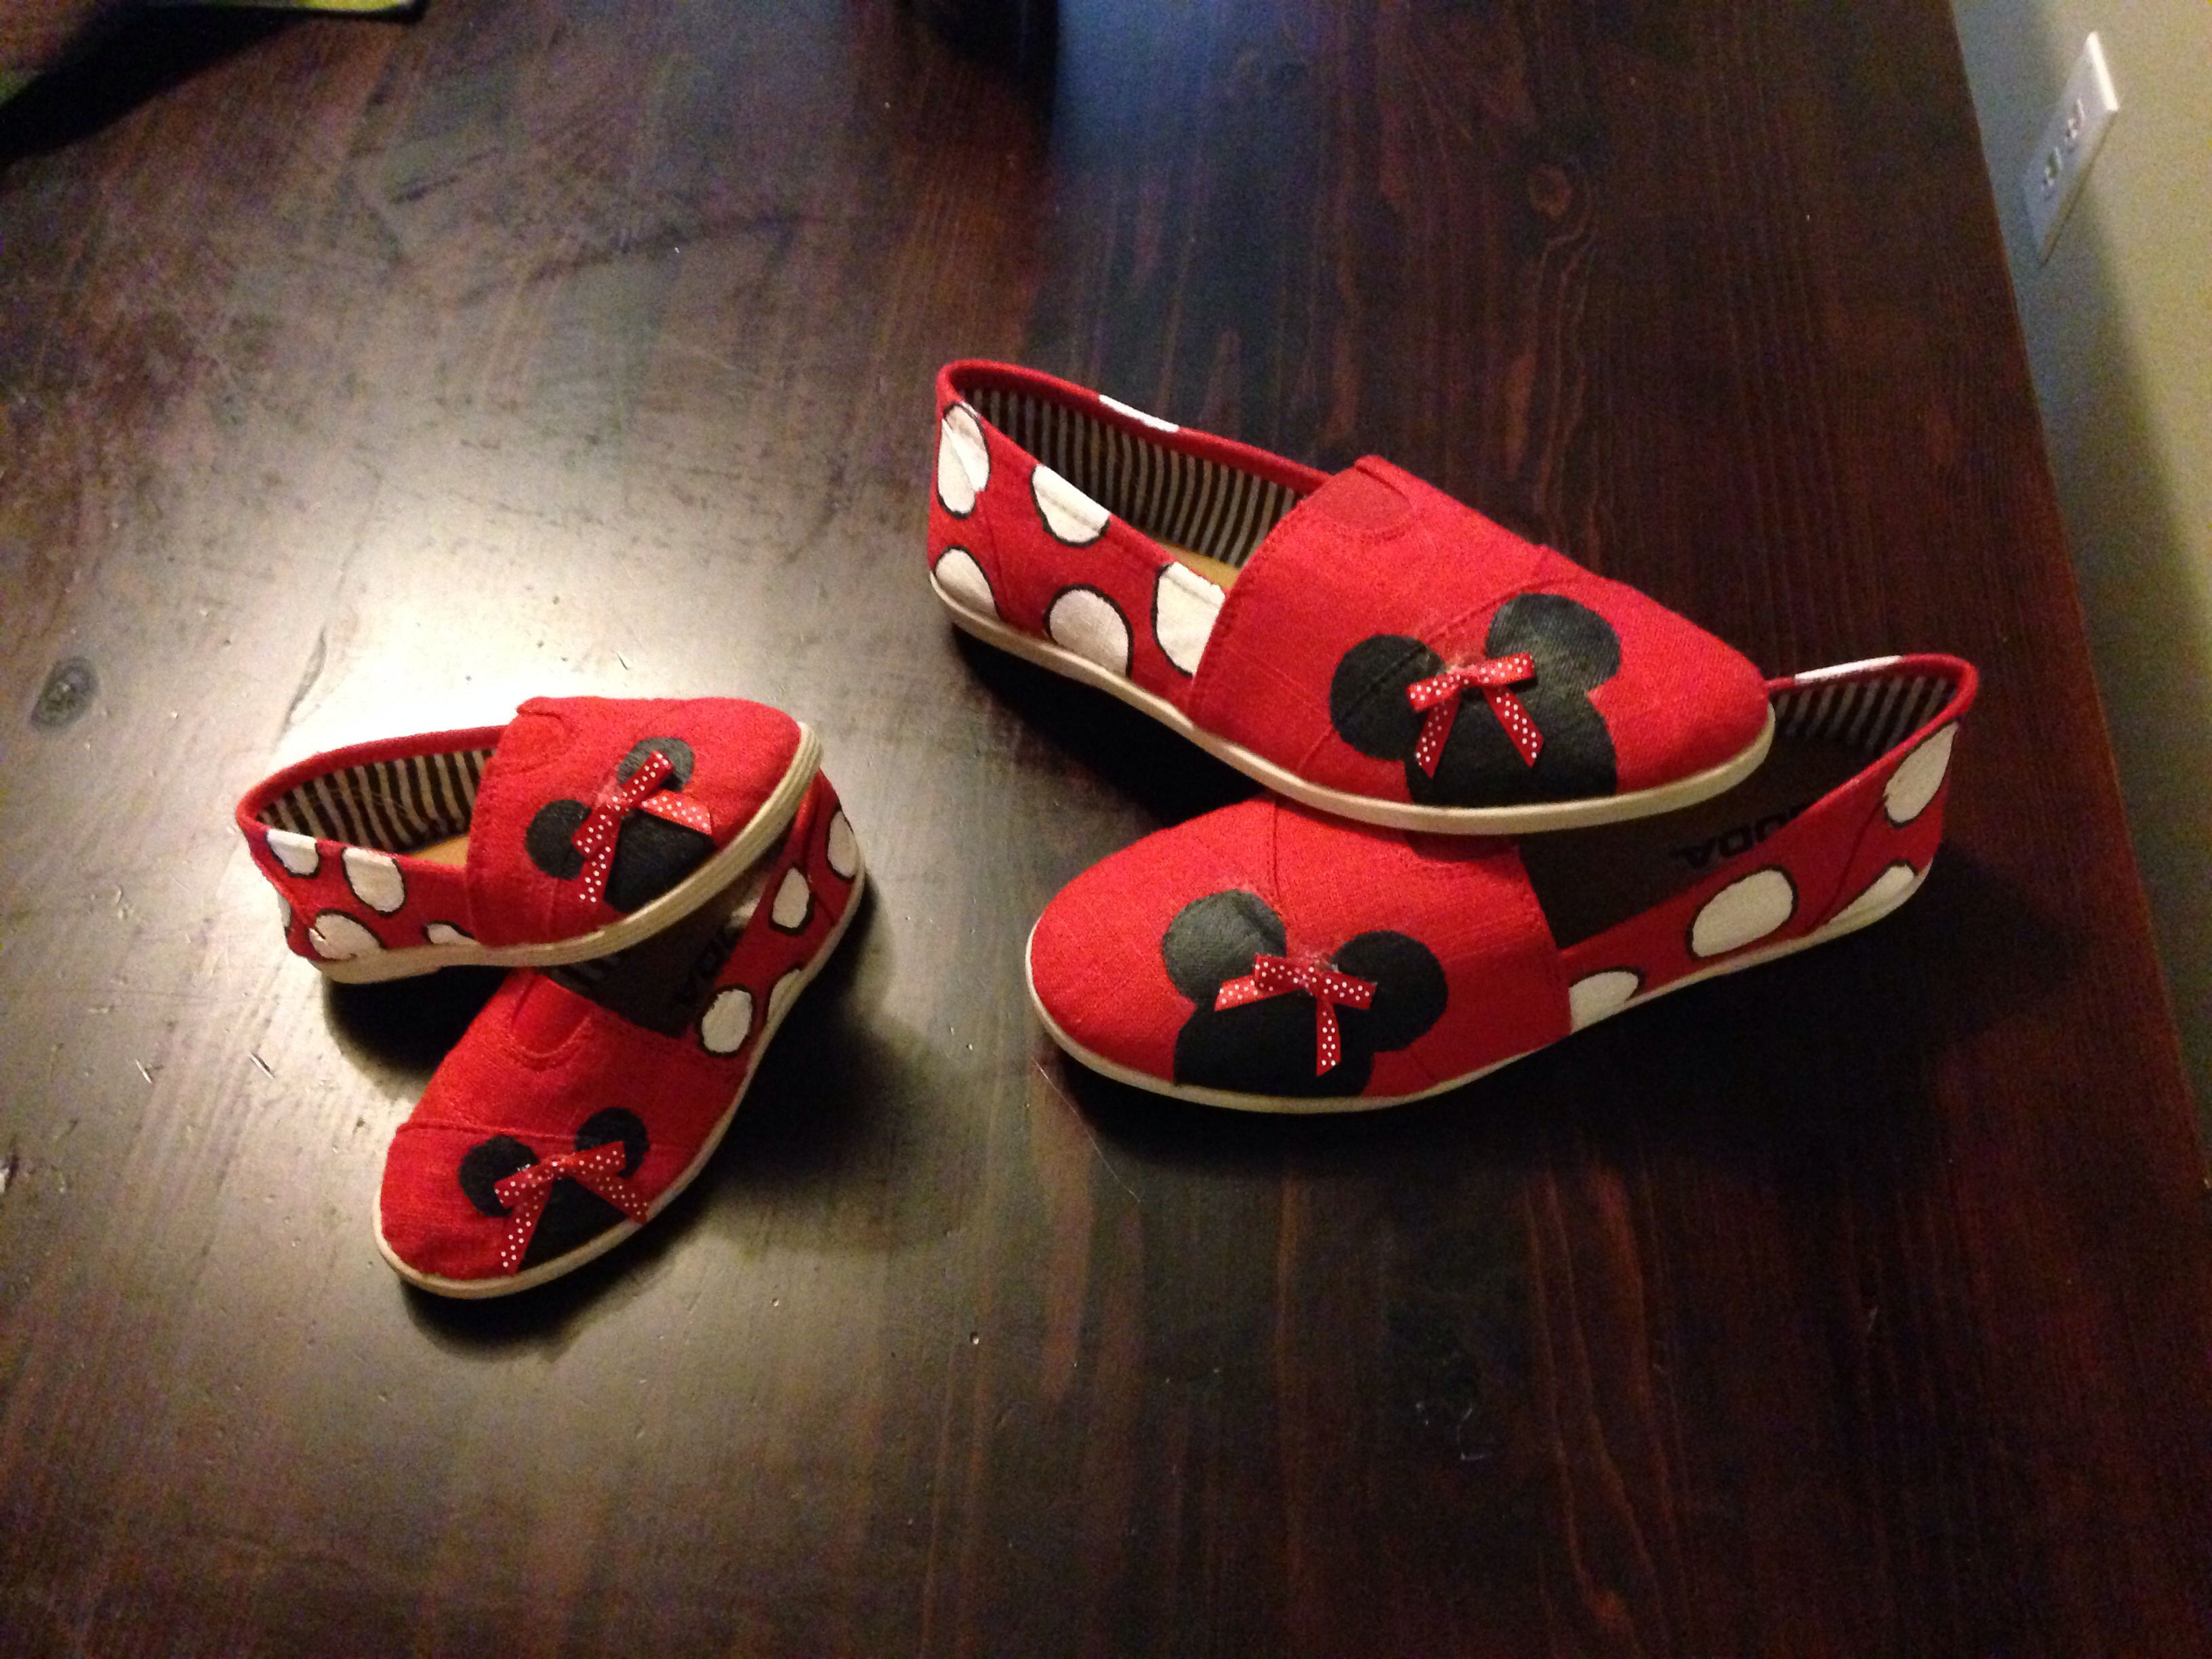 tomsfashion$9.9 on | Disney shoes, Disney toms, Disney outfits